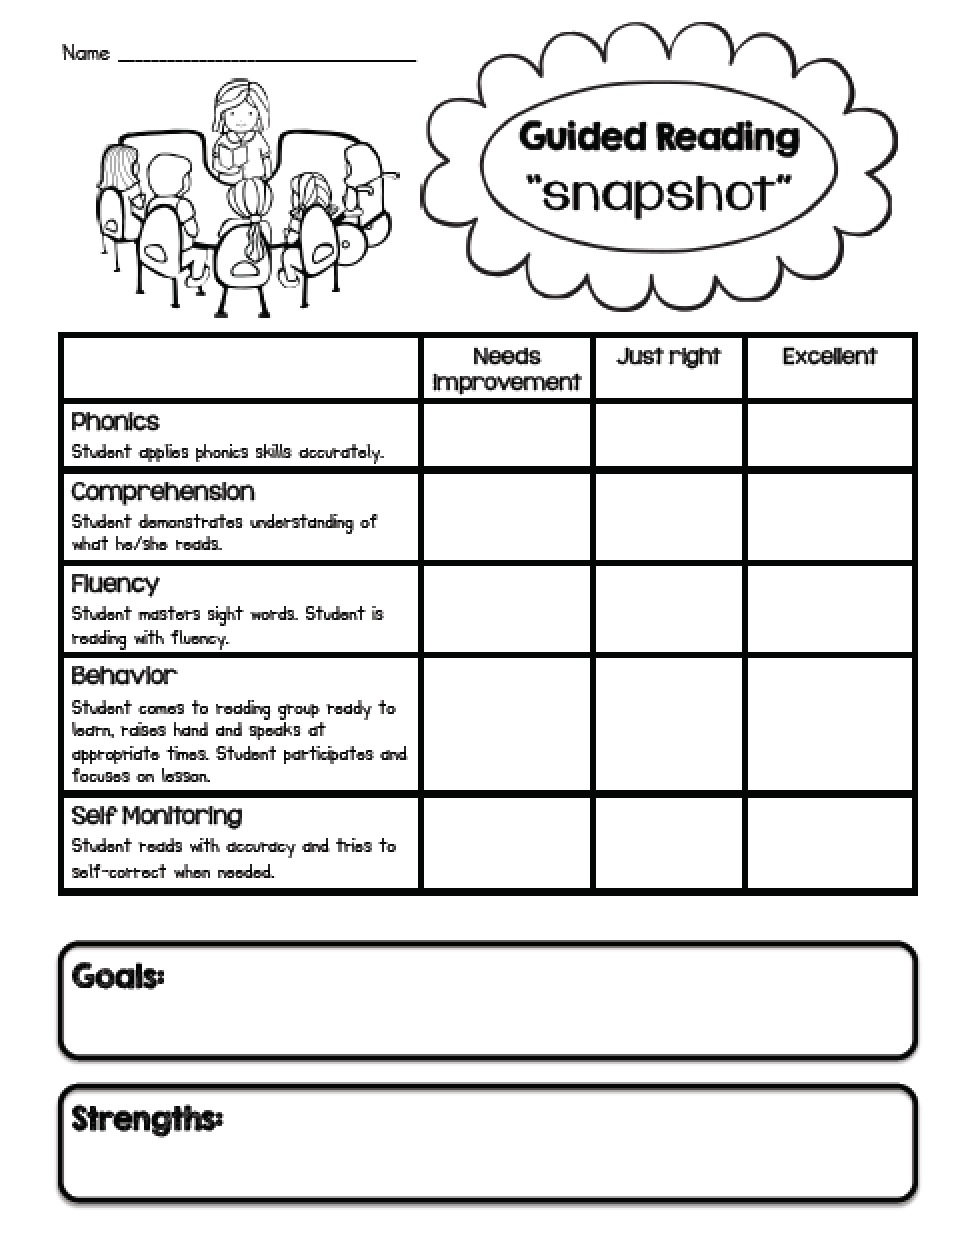 reading analysis A reading analysis assessment form for ks1 or ks2 with tick boxes to show reading attainment and reading strategies used.